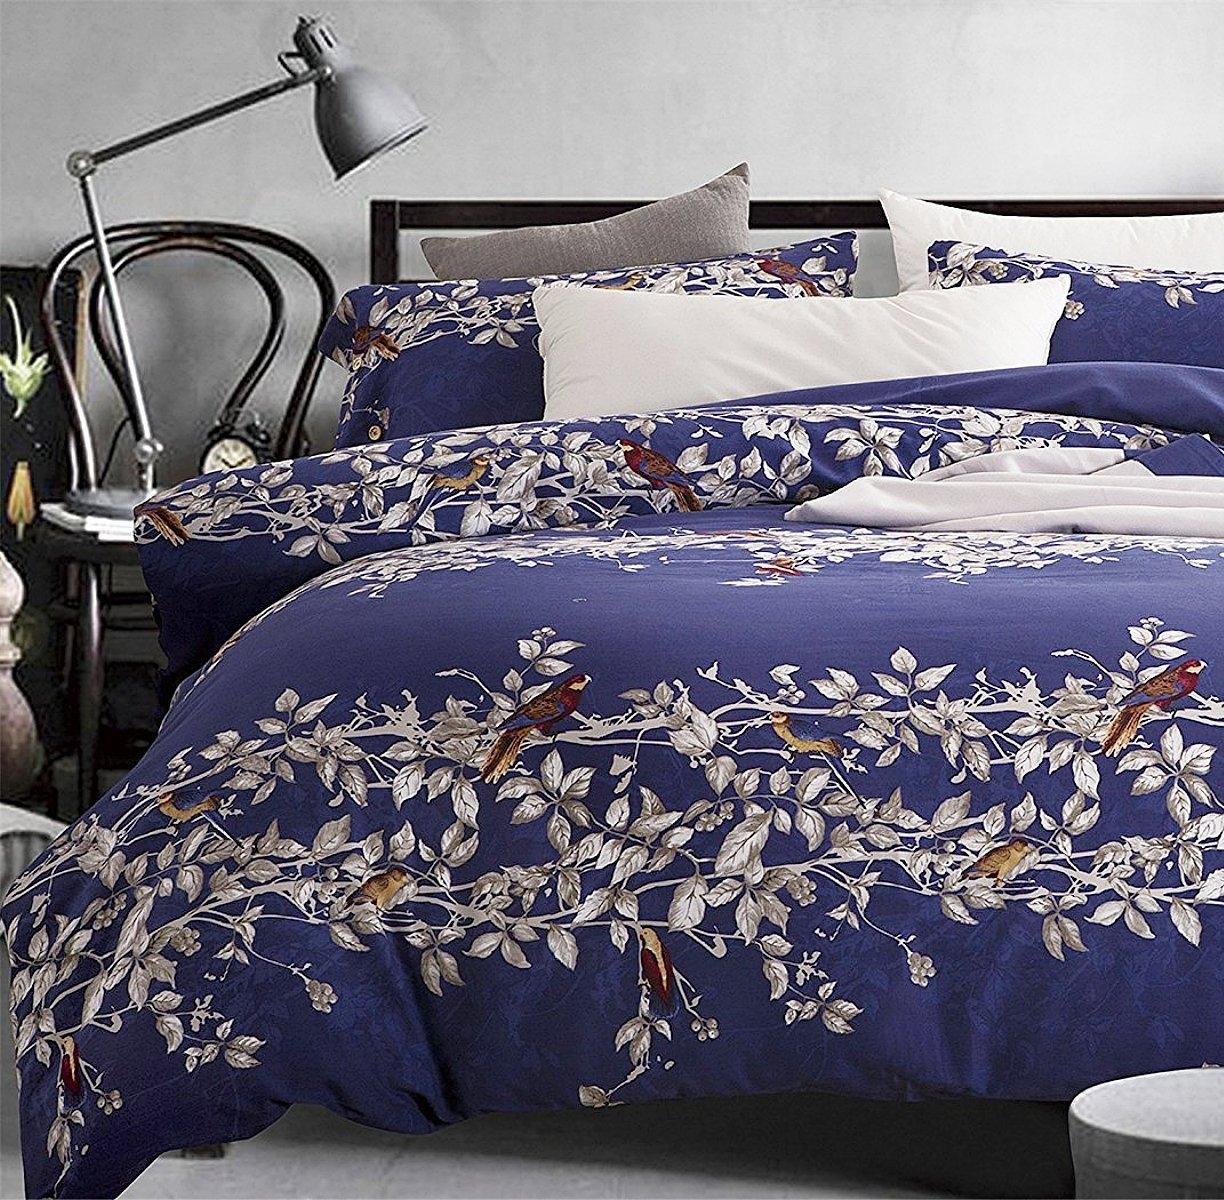 buy set logan and cover main duvet mason csl navy essex by